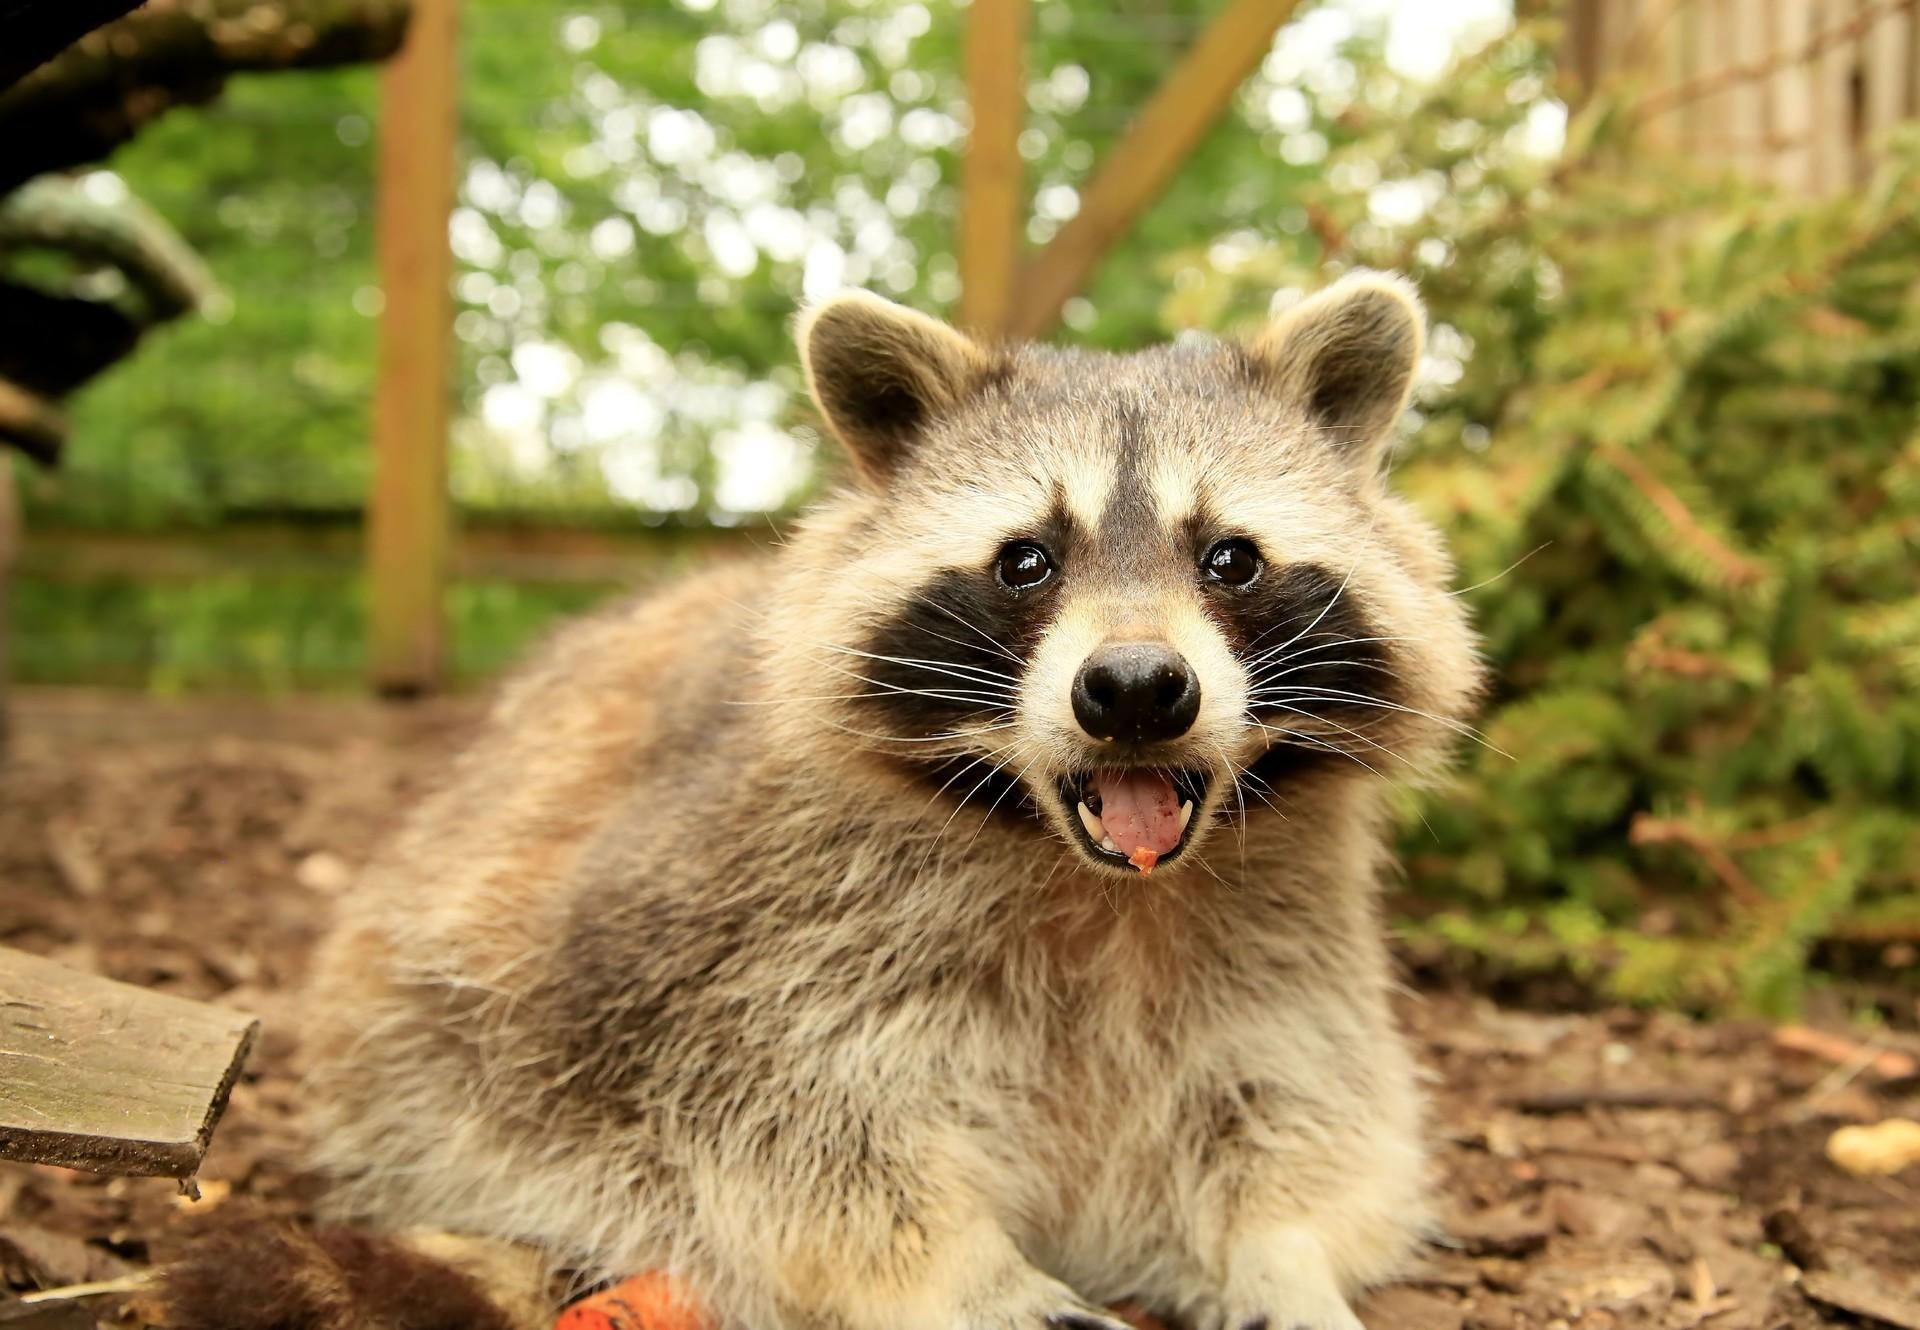 Raccoon at TIERART